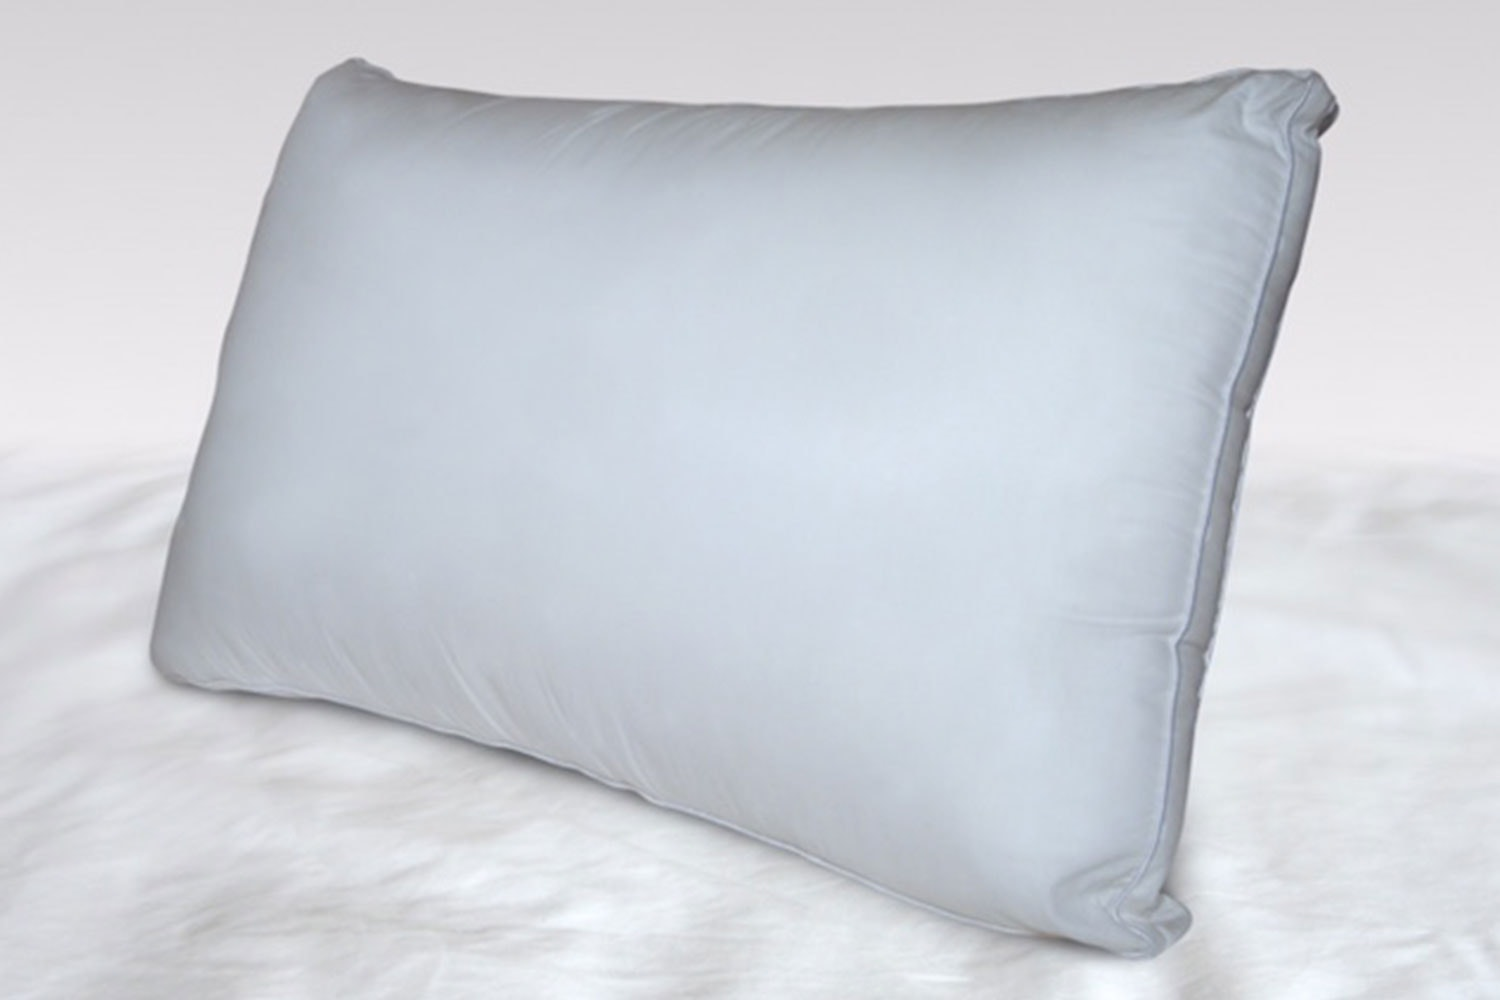 Low and Soft Gusseted Pillow by Herington